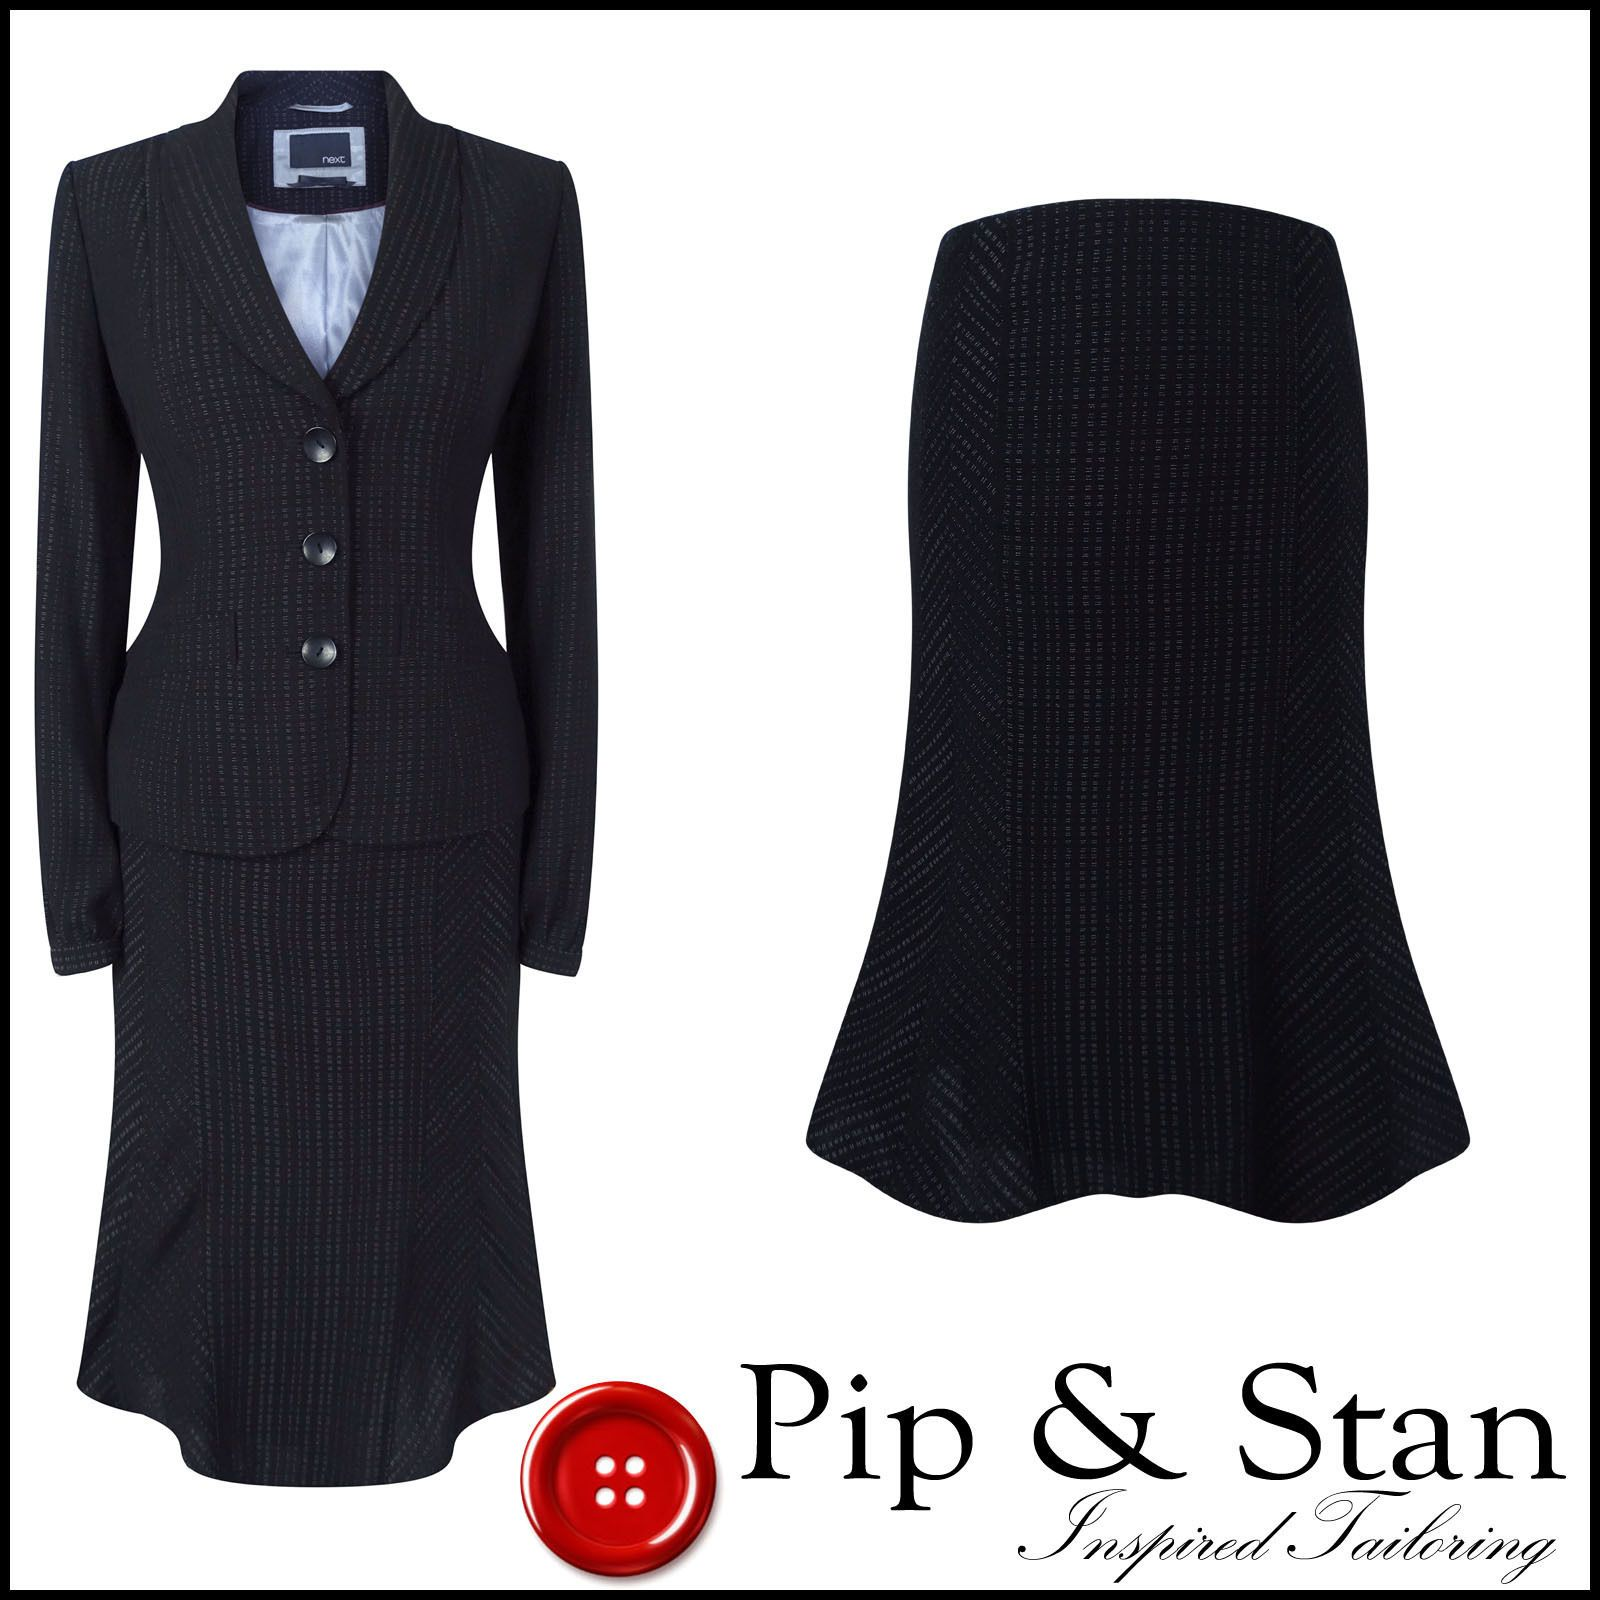 New Next Uk8 6 Us4 2 Black Pinstripe Skirt Suit Womens Woman Ladies